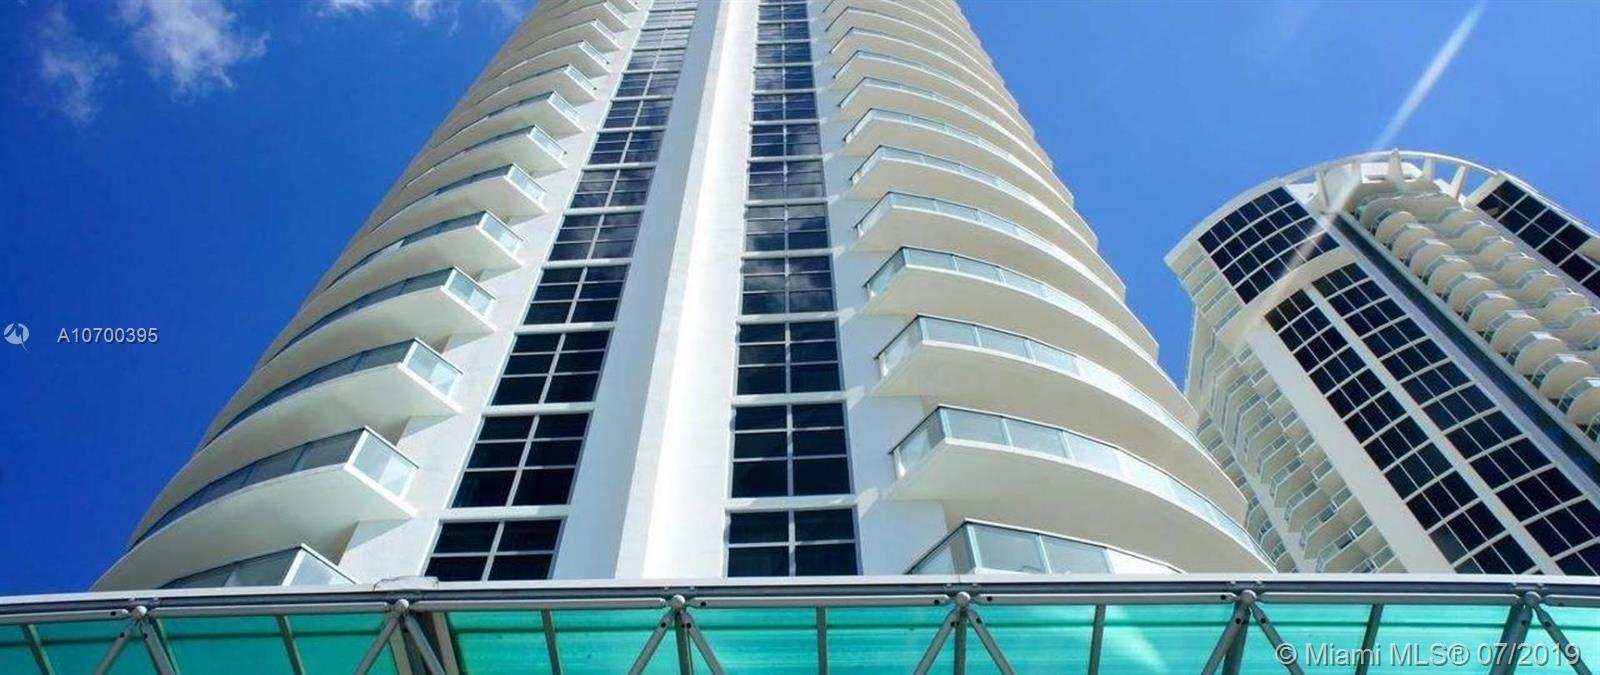 18683  Collins Ave #508 For Sale A10700395, FL